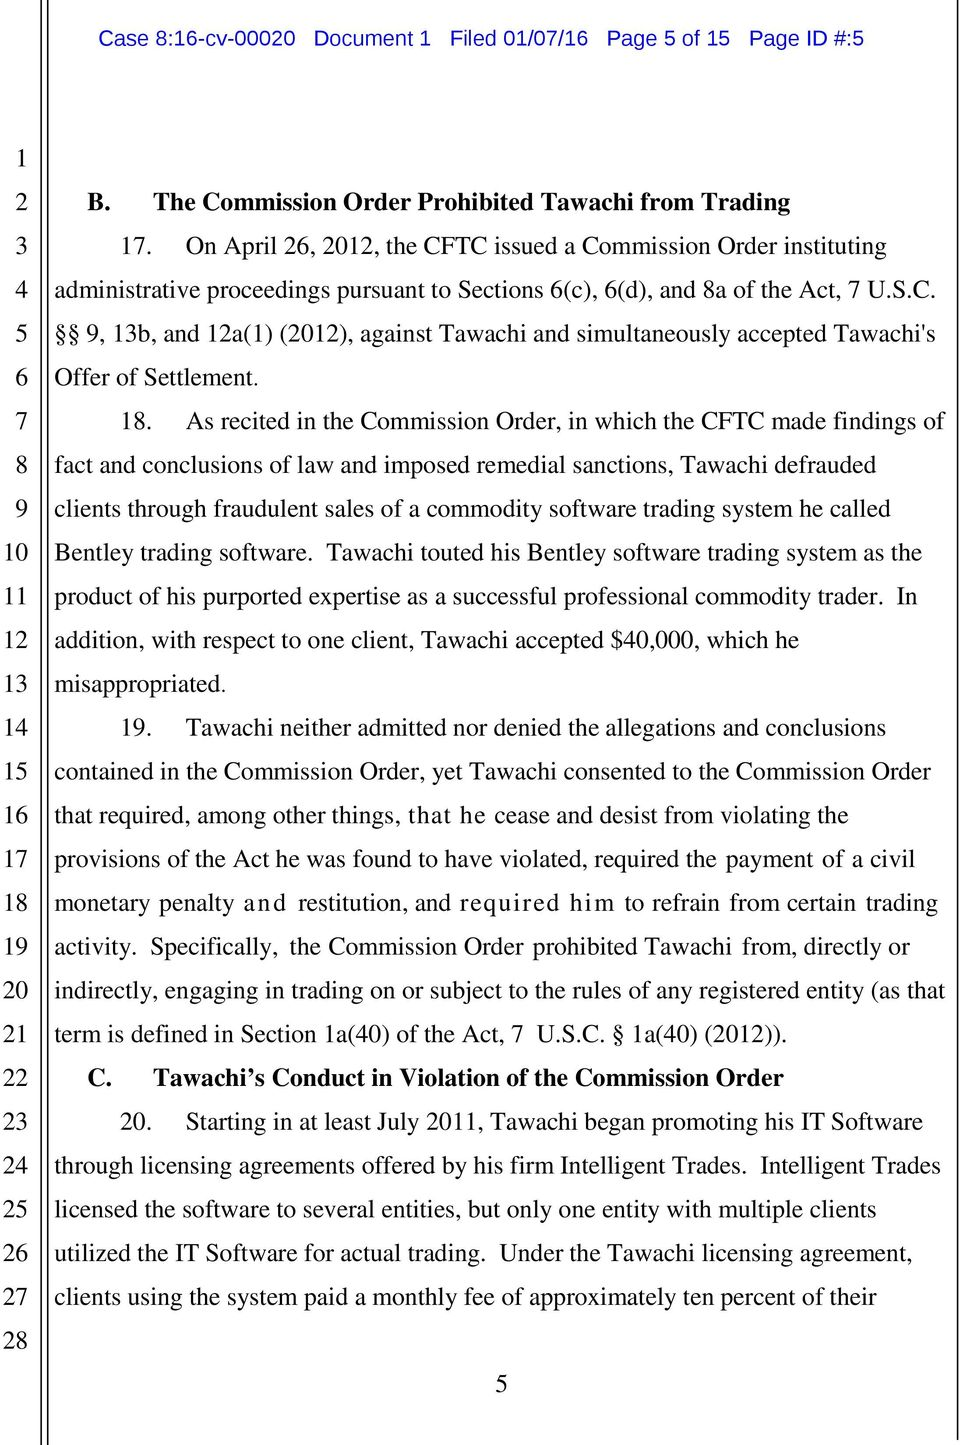 . As recited in the Commission Order, in which the CFTC made findings of fact and conclusions of law and imposed remedial sanctions, Tawachi defrauded clients through fraudulent sales of a commodity